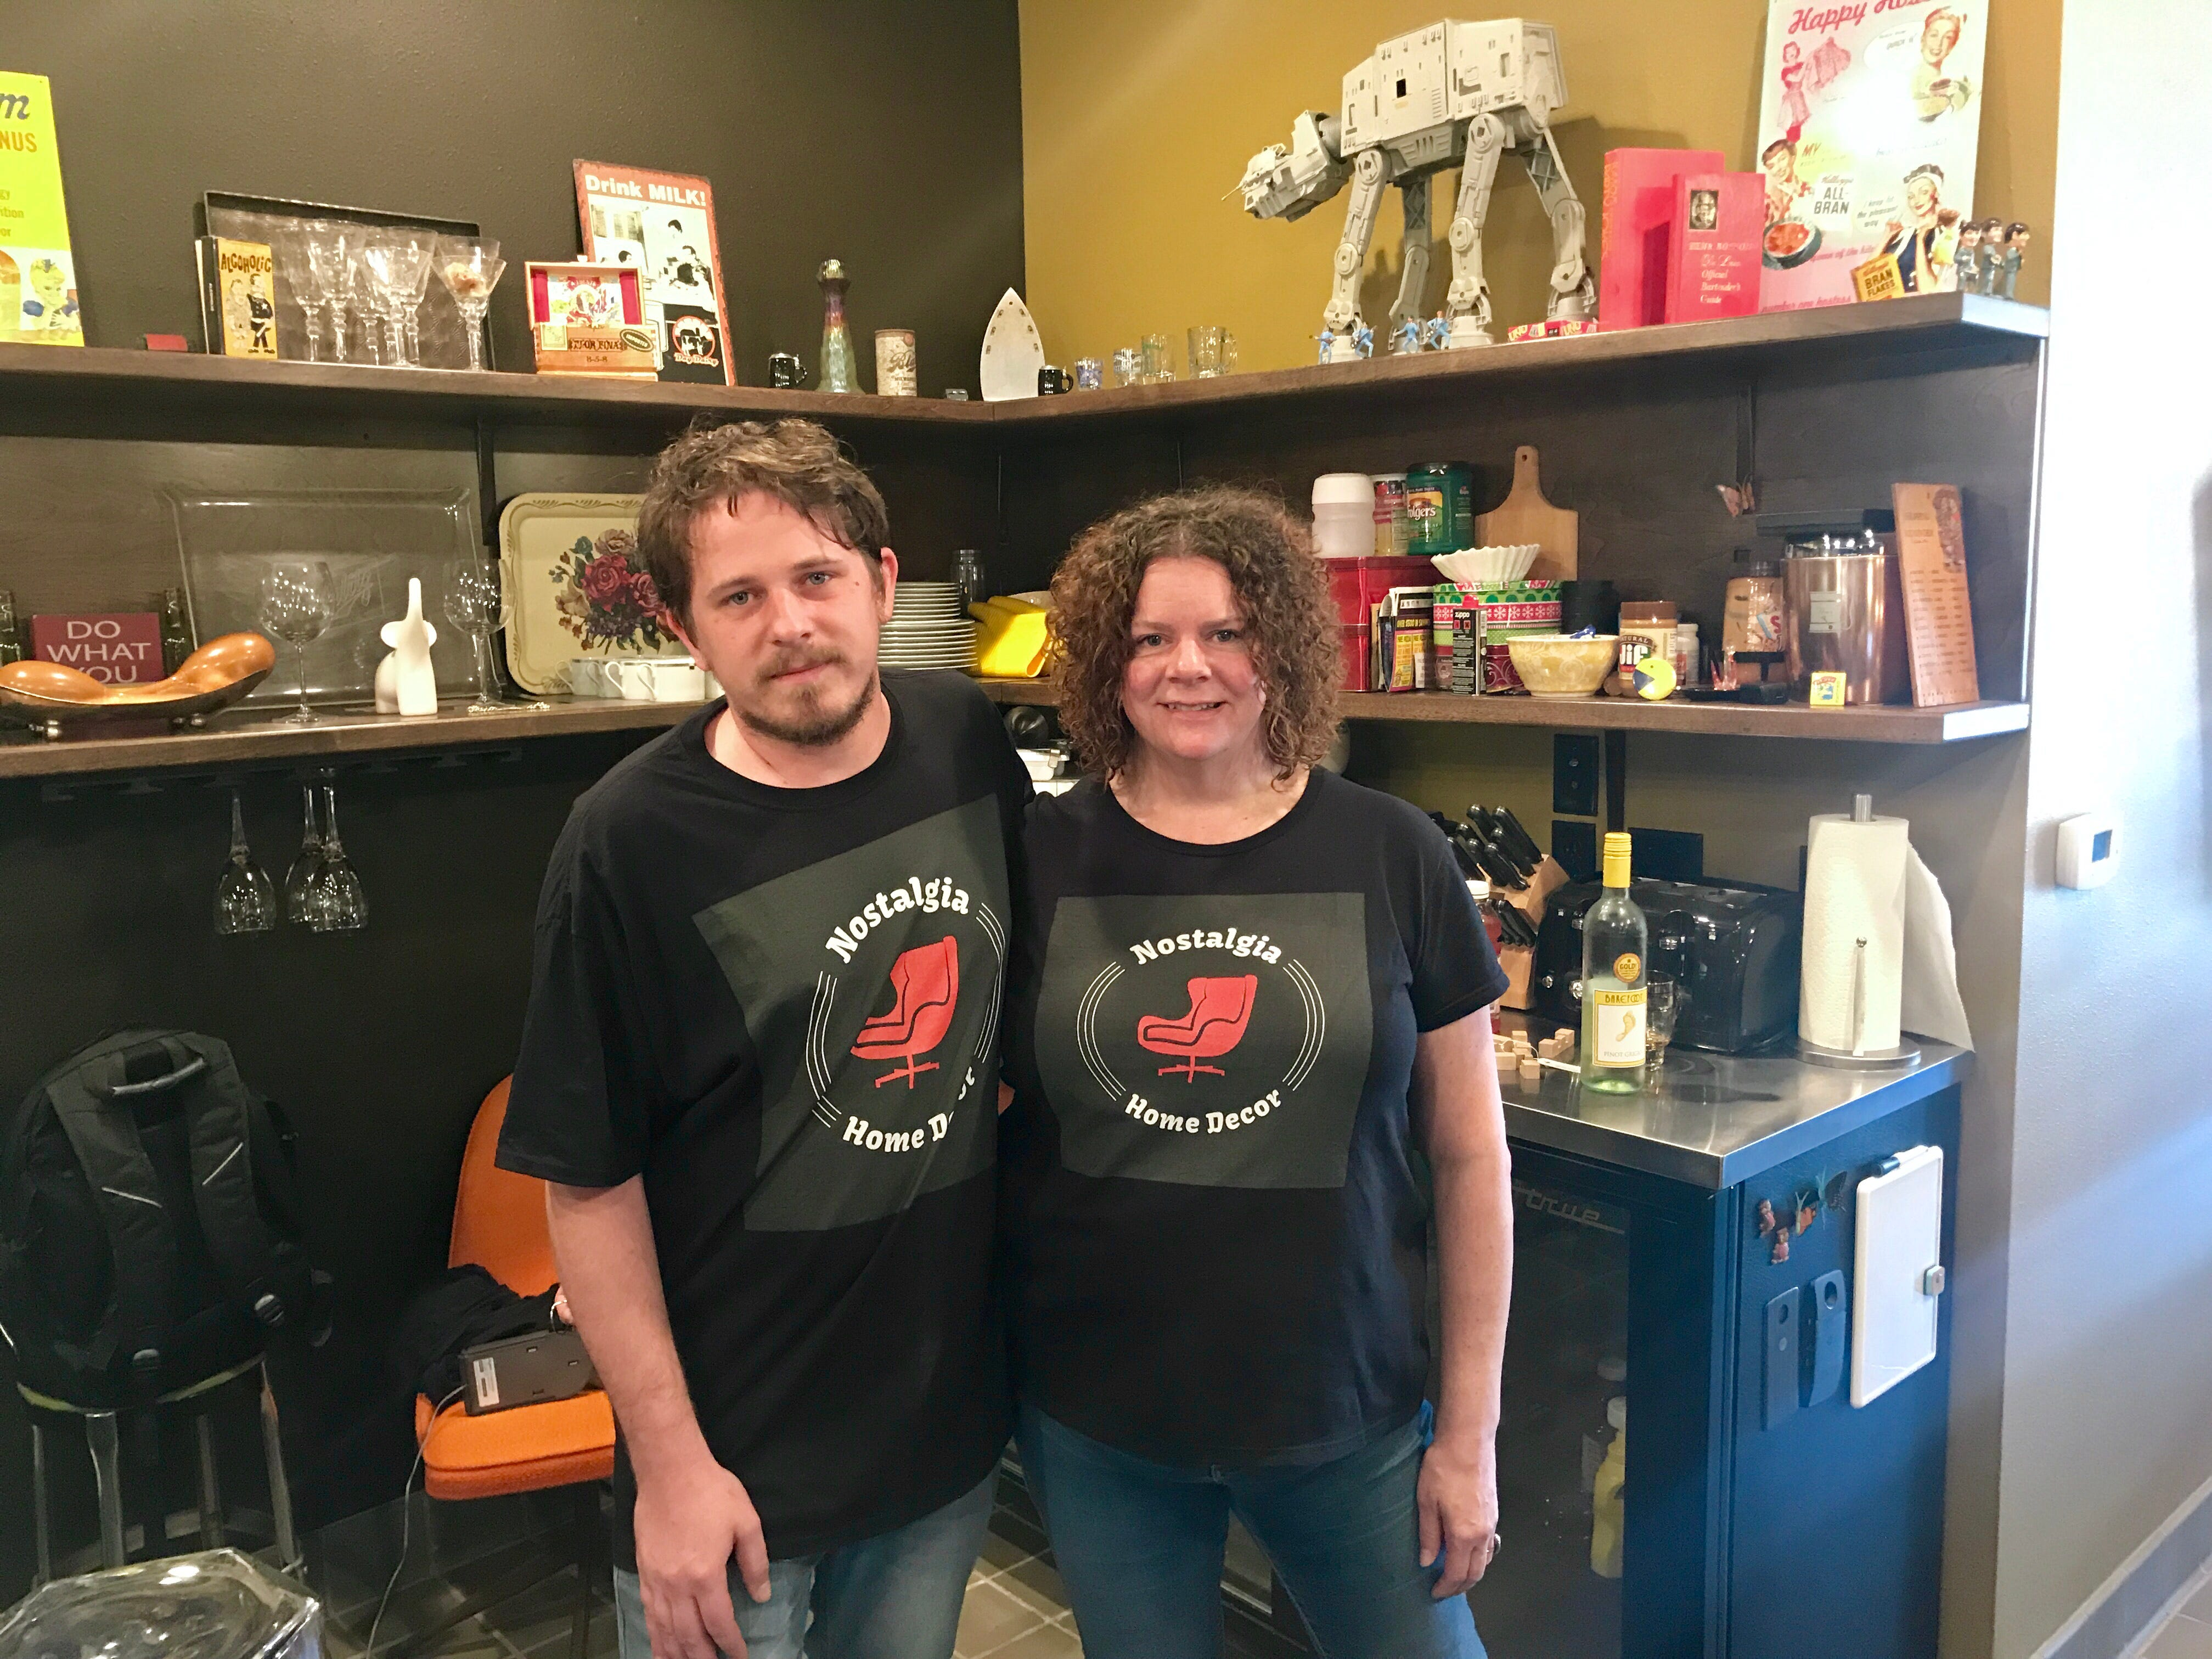 William Bachle and Georgette Muilenburg own Nostalgia Home Decor on North King Drive. The area was a spotlight neighborhood in the annual Doors Open Milwaukee event.